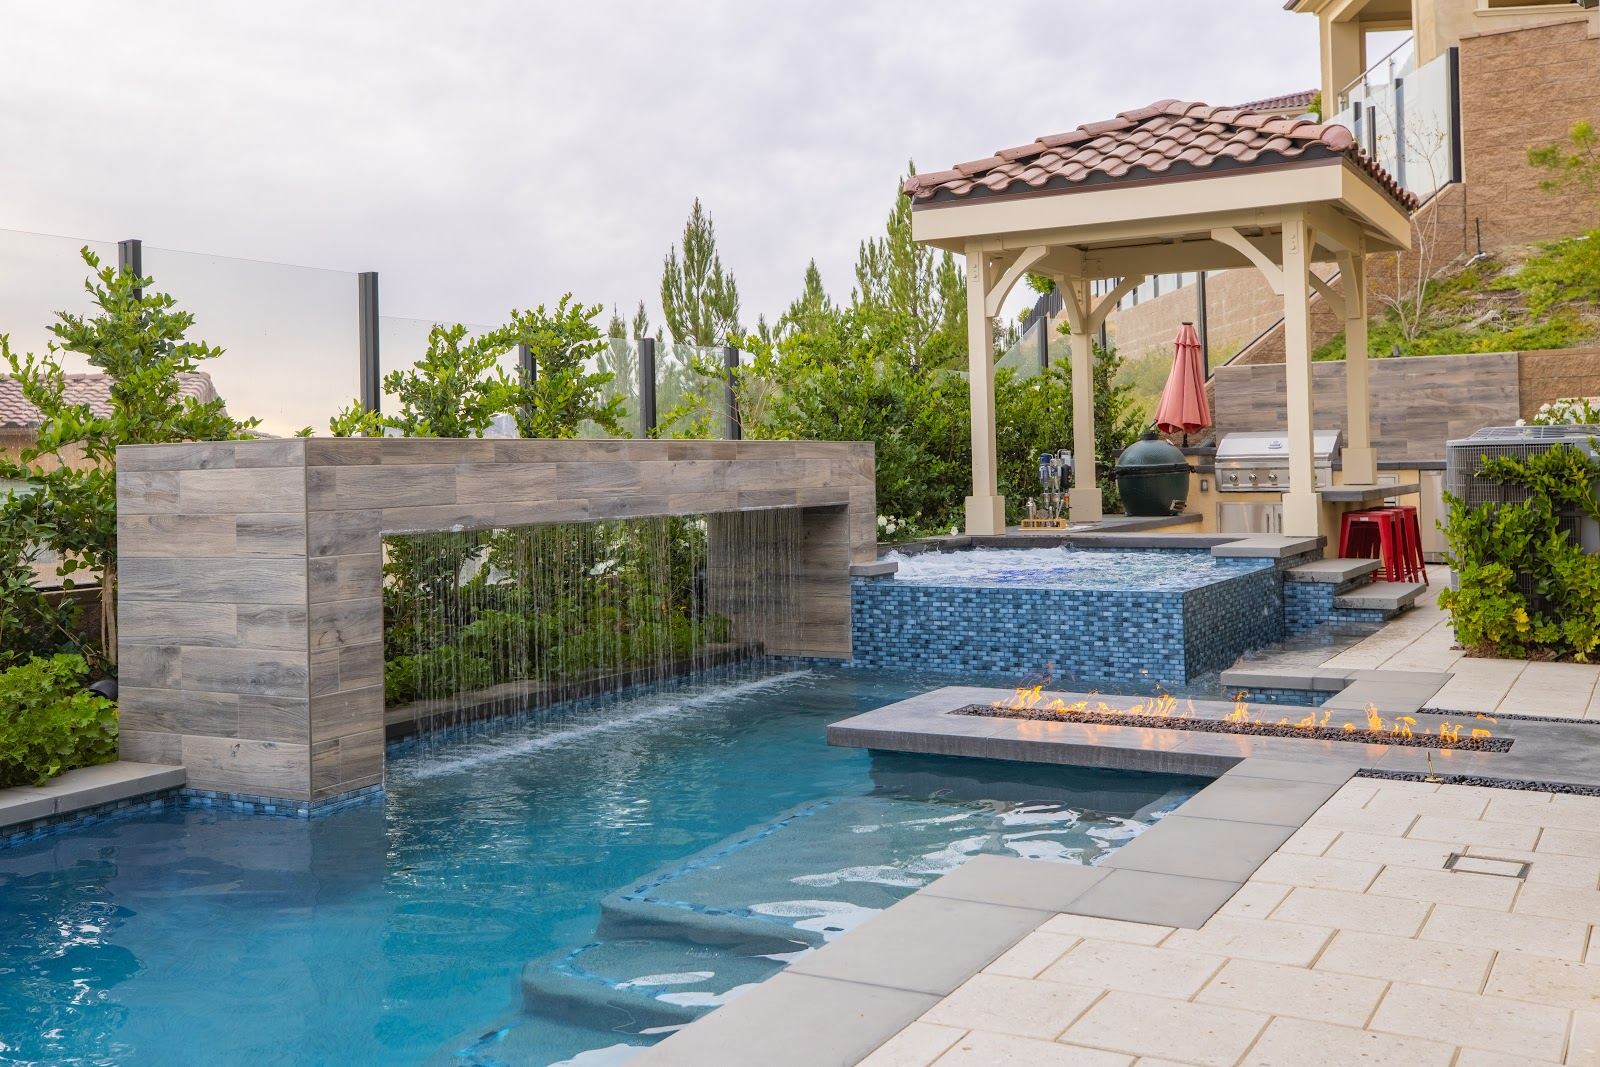 Contemporary pool design with waterfall feature and perimeter overflow spa